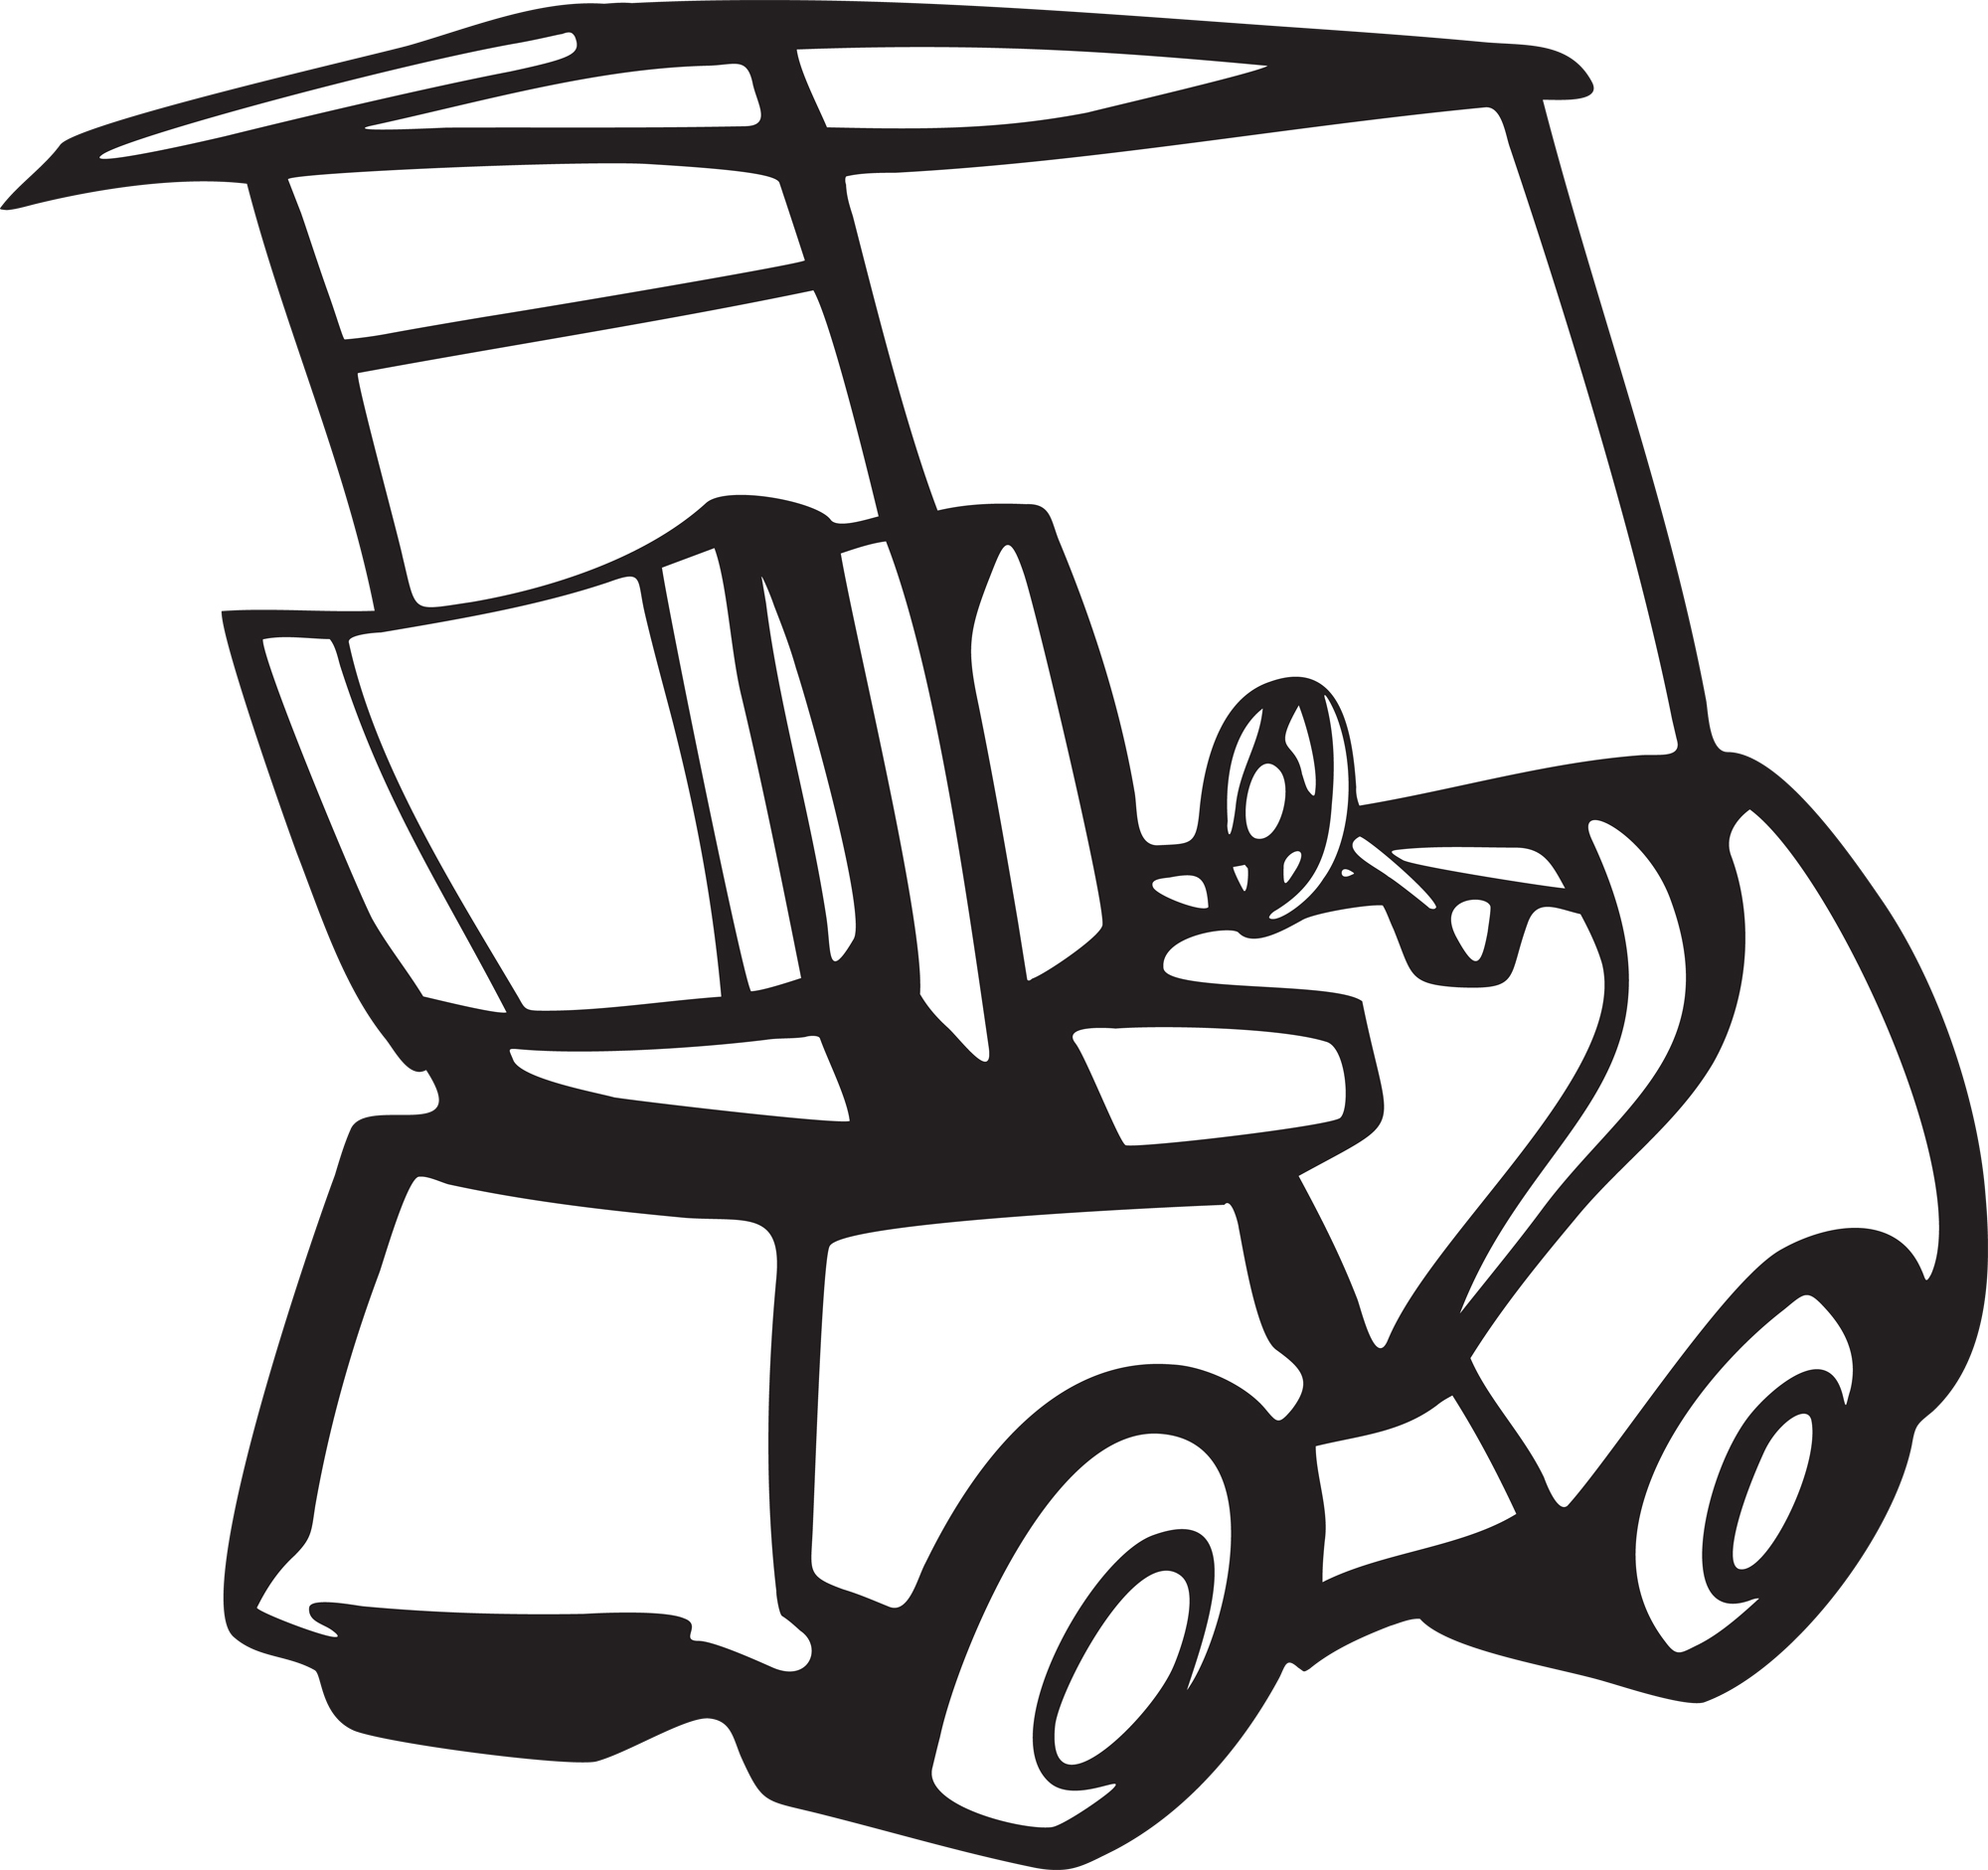 Golf cart black and white clipart free vector clip art black and white library Free Golf Cart Clipart, Download Free Clip Art, Free Clip Art on ... clip art black and white library